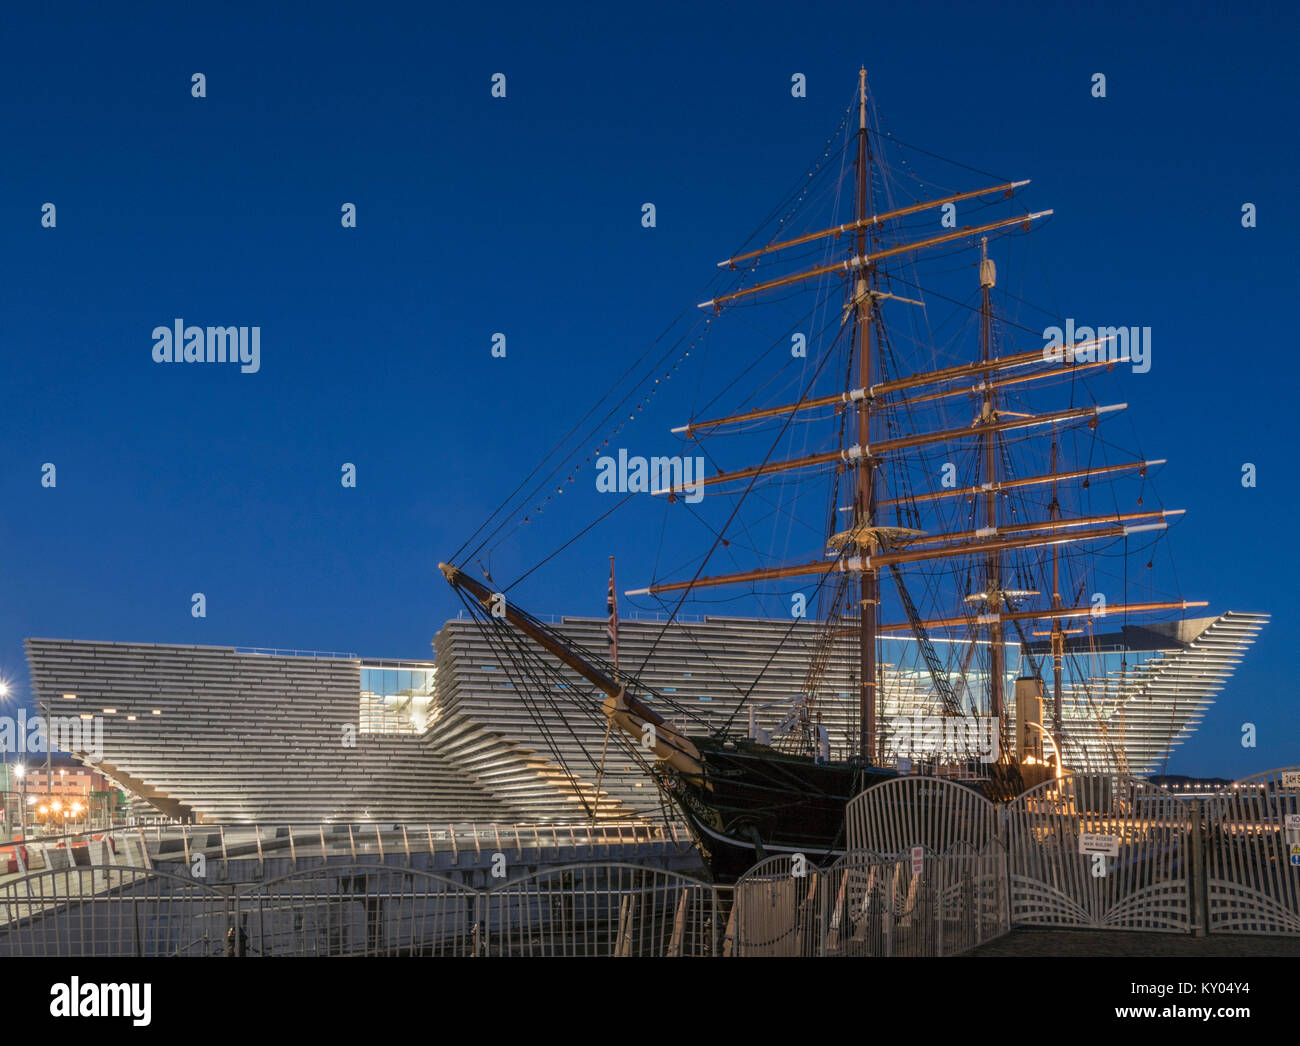 The V&A design museum has been sited next to the RRS Discovery as part of the waterfront development scheme, - Stock Image